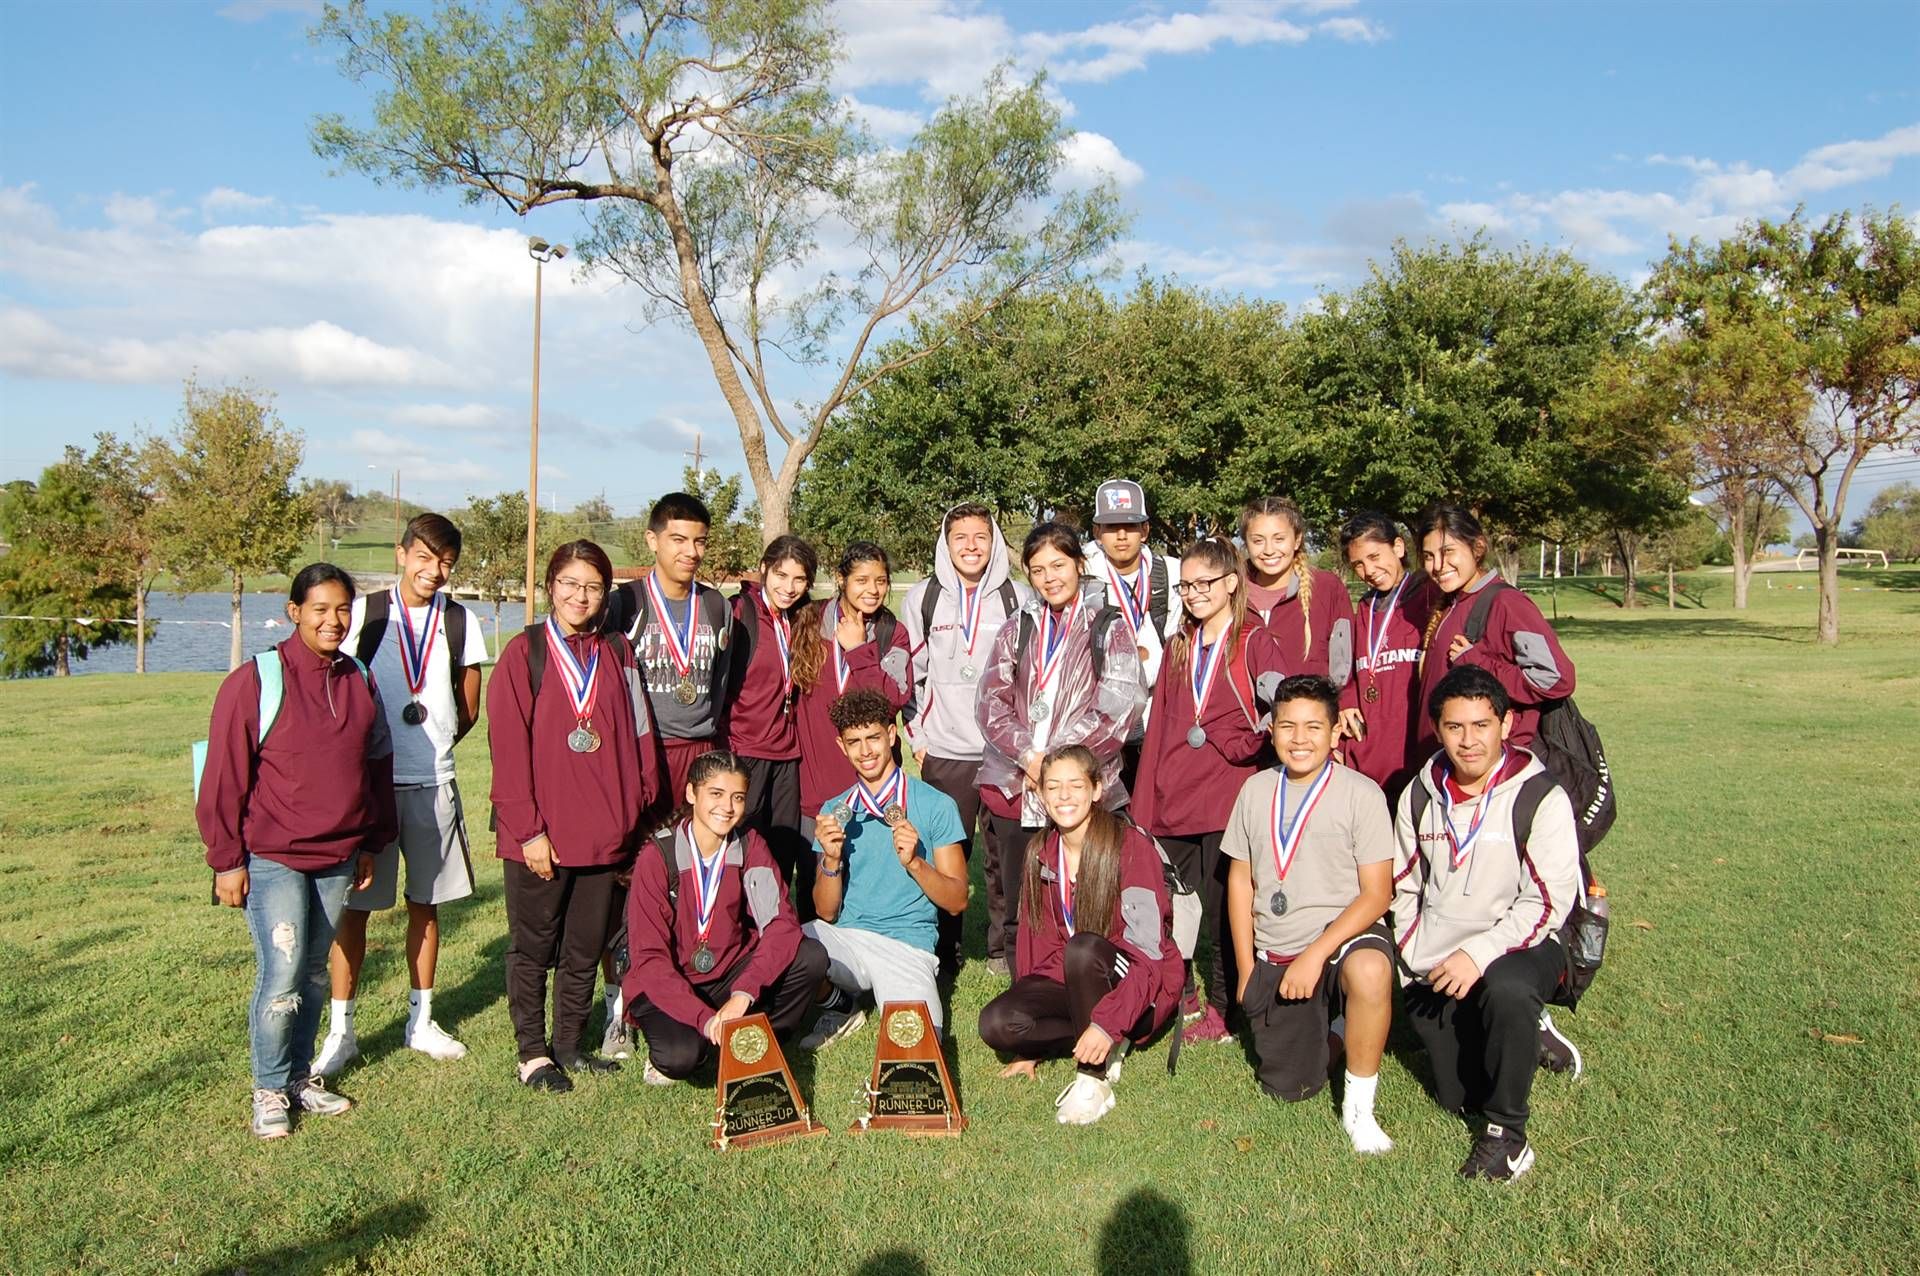 Picture of Bovina High School District Cross Country Team